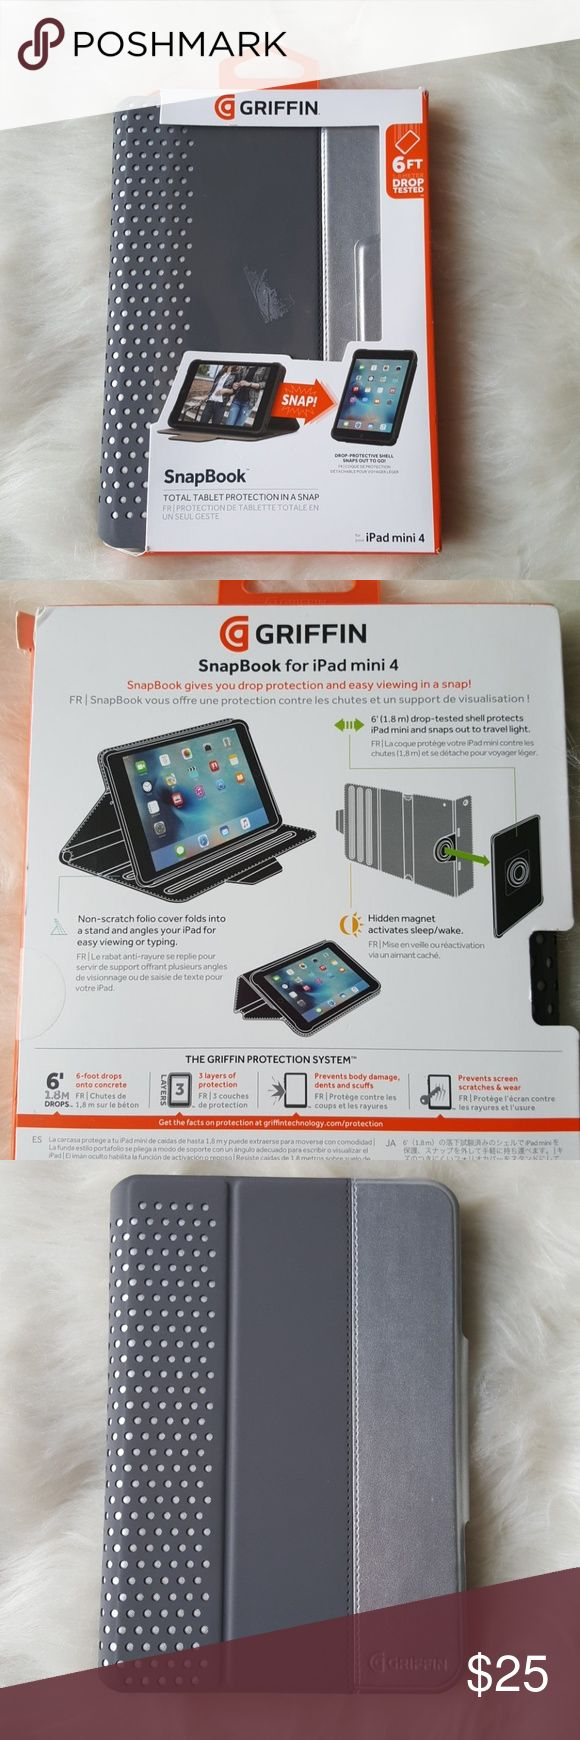 Griffin SnapBook iPad mini 4 case cover NWT ipad mini 4 cover in a grey with metallic silver. It is beautiful and a very sturdy and protective case. 6 foot drop tested and has auto sleep/wake. Never used, I have a mini 2. Note: 🚫This cover will NOT fit iPad mini 3, mini 2 or mini. 🚫 Griffin Accessories Tablet Cases